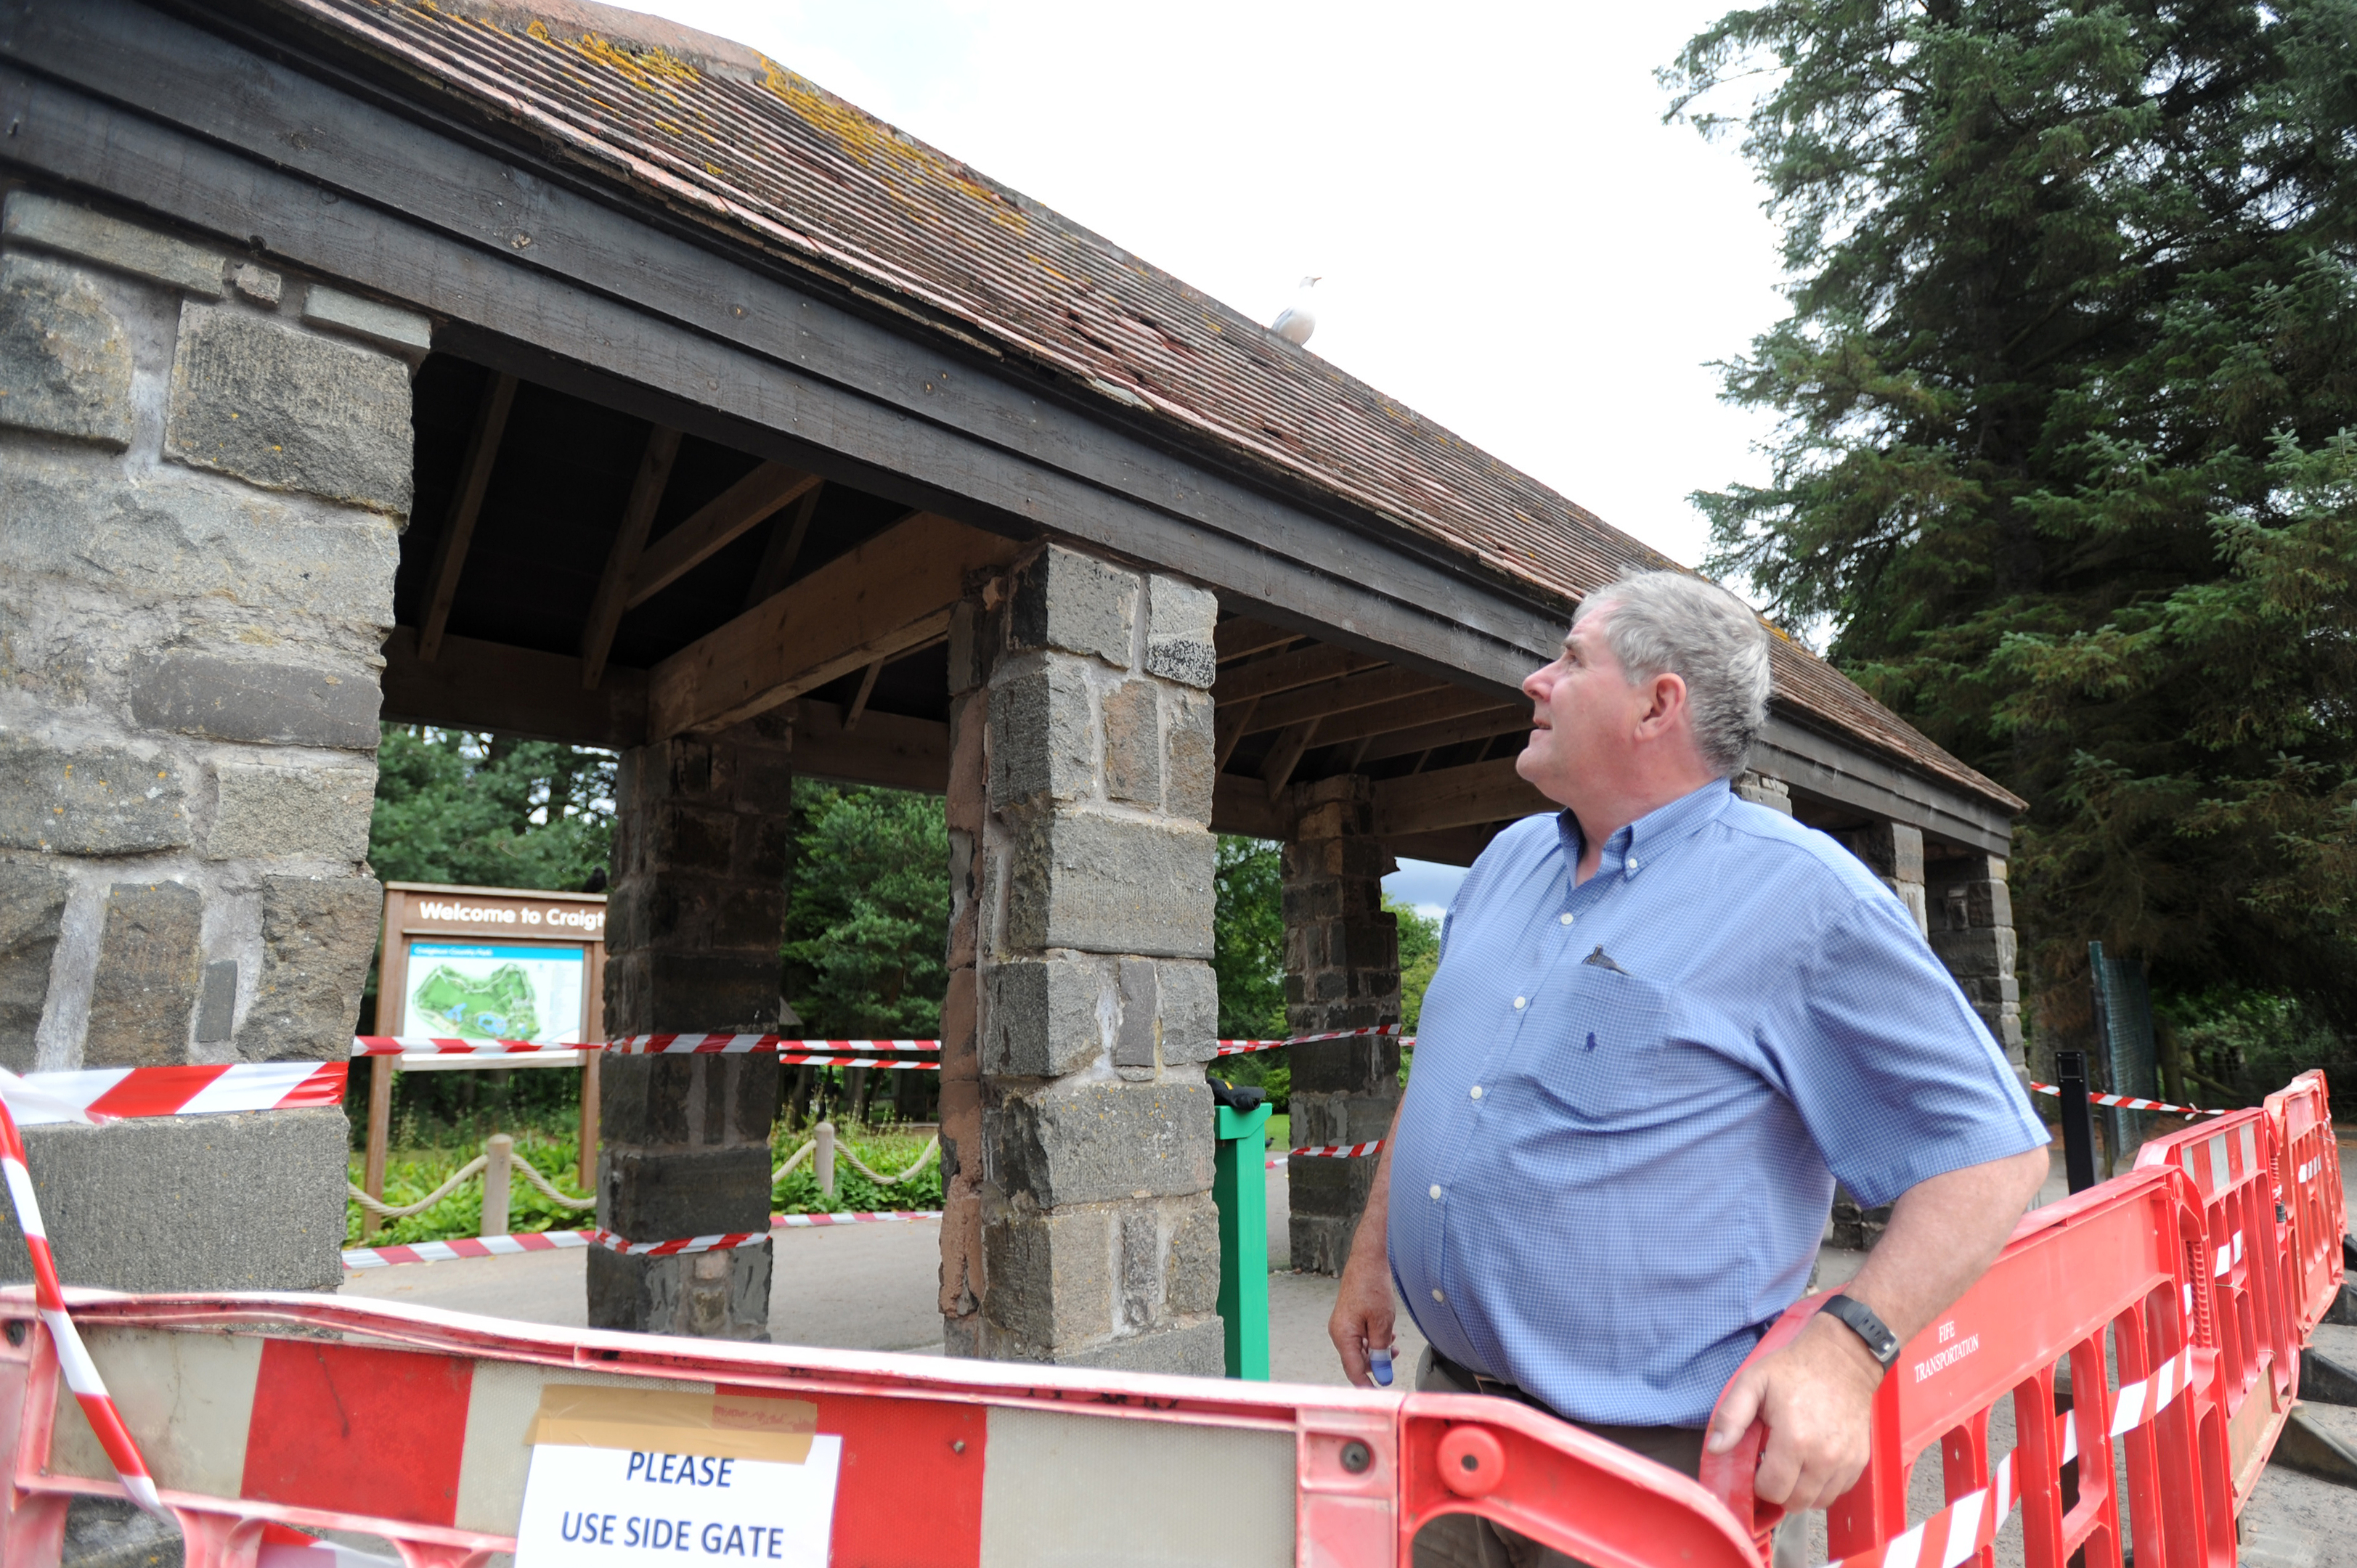 Craigtoun Country Park has suffered a spate of vandalism